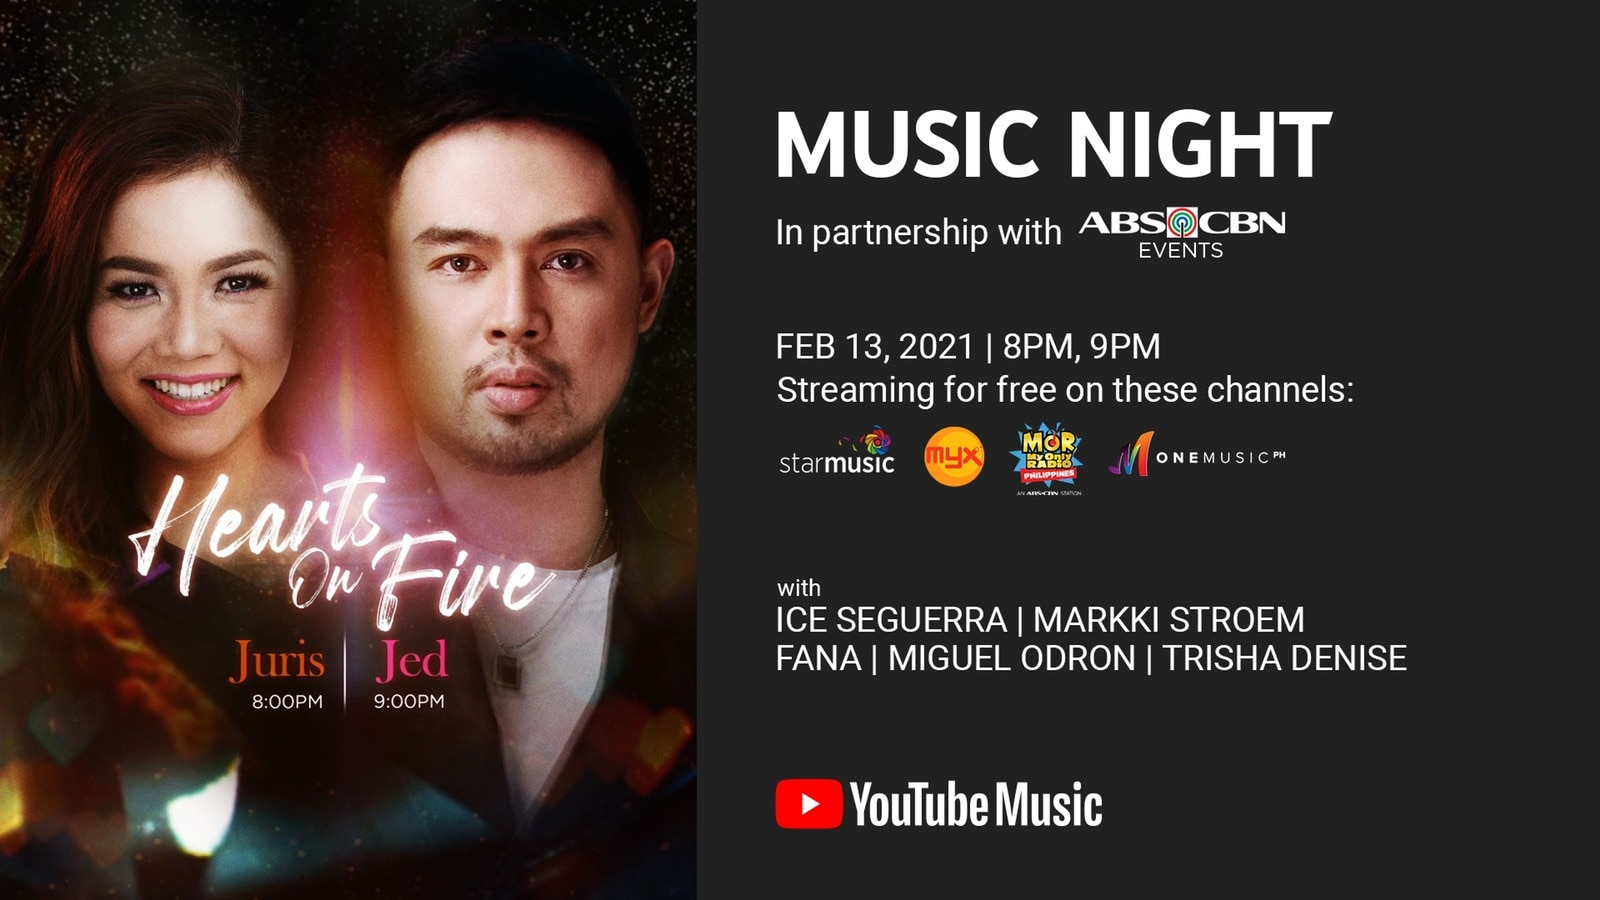 YouTube Music Night Hearts On Fire Juris and Jed